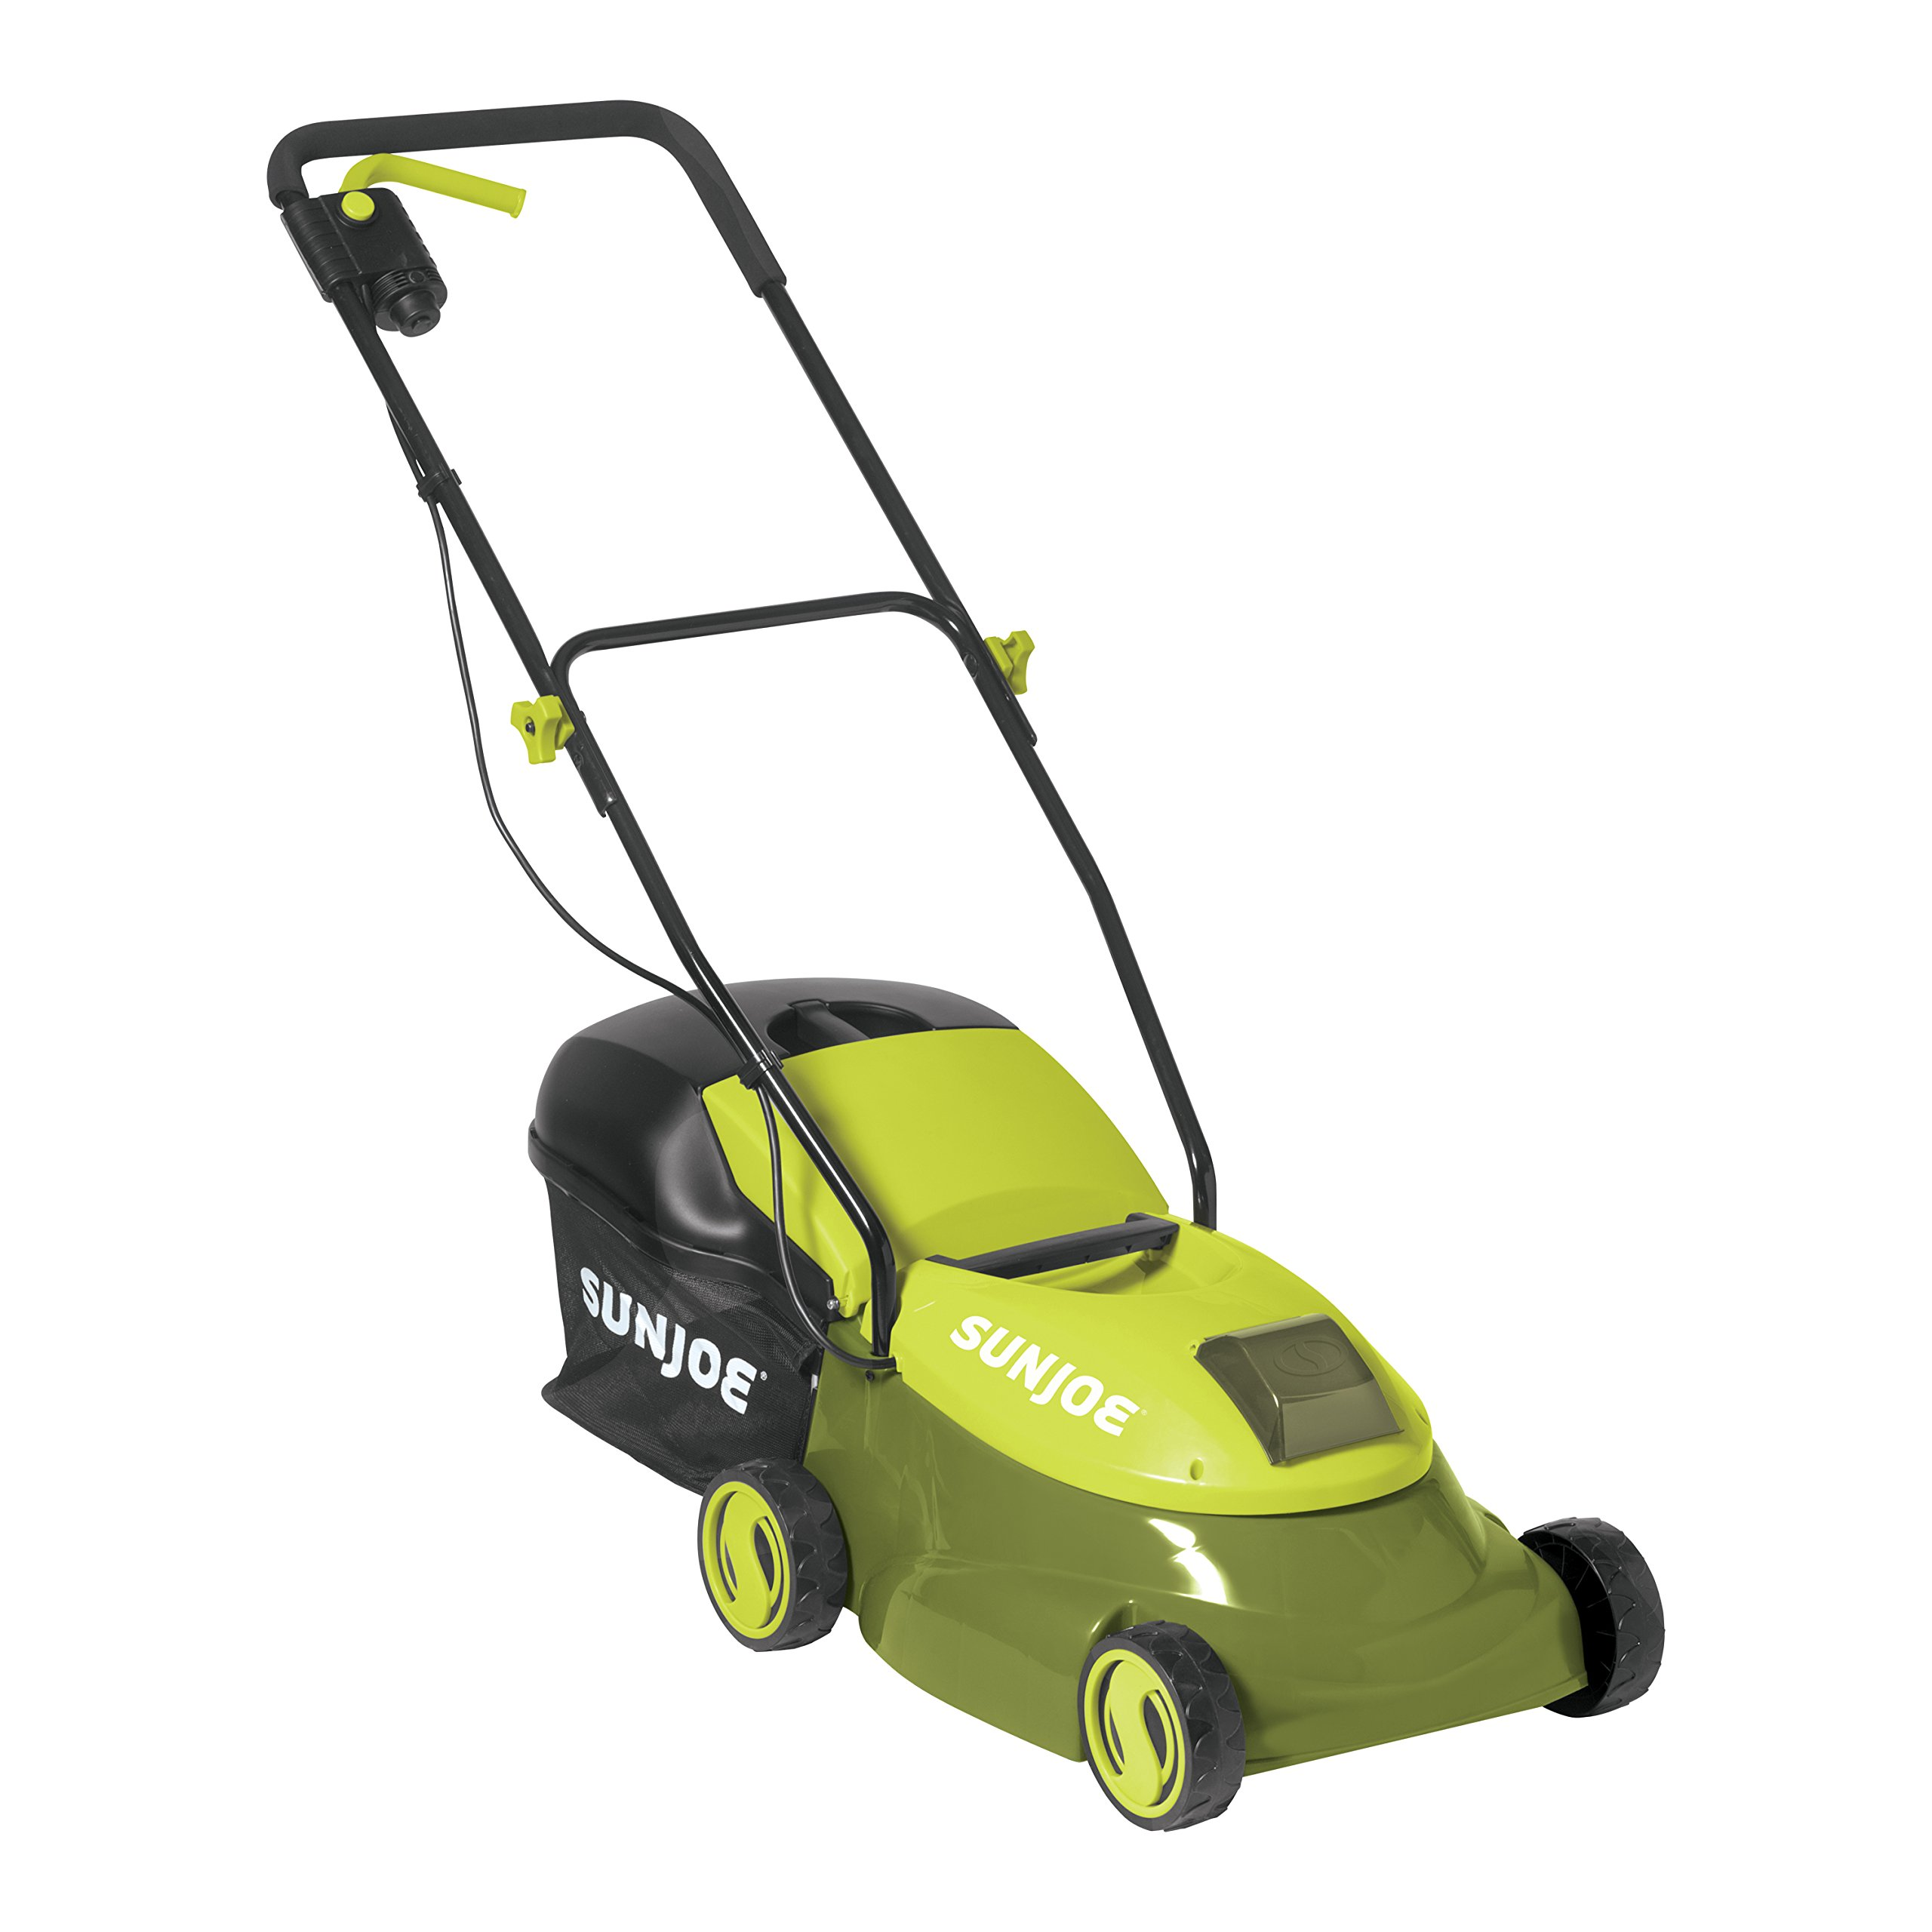 Best Cordless Lawn Mower 2020.Best Cordless Lawn Mowers Reviews 2020 Complete Guide